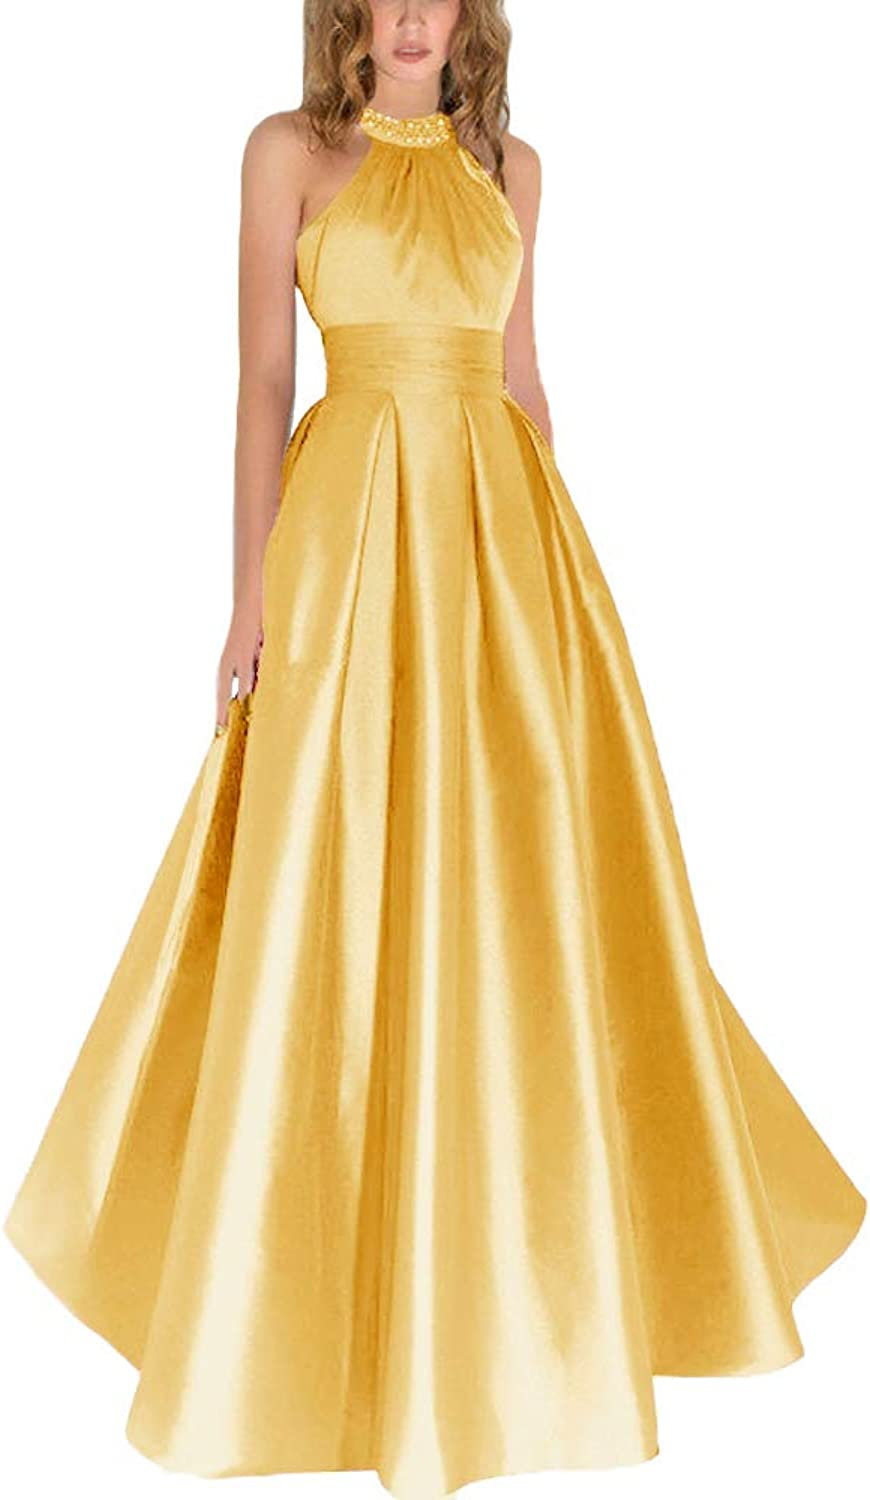 JINGDRESS Halter Satin Prom Maxi Gowns Sexy Open Back Beaded Cocktail Evening Gowns for Girls